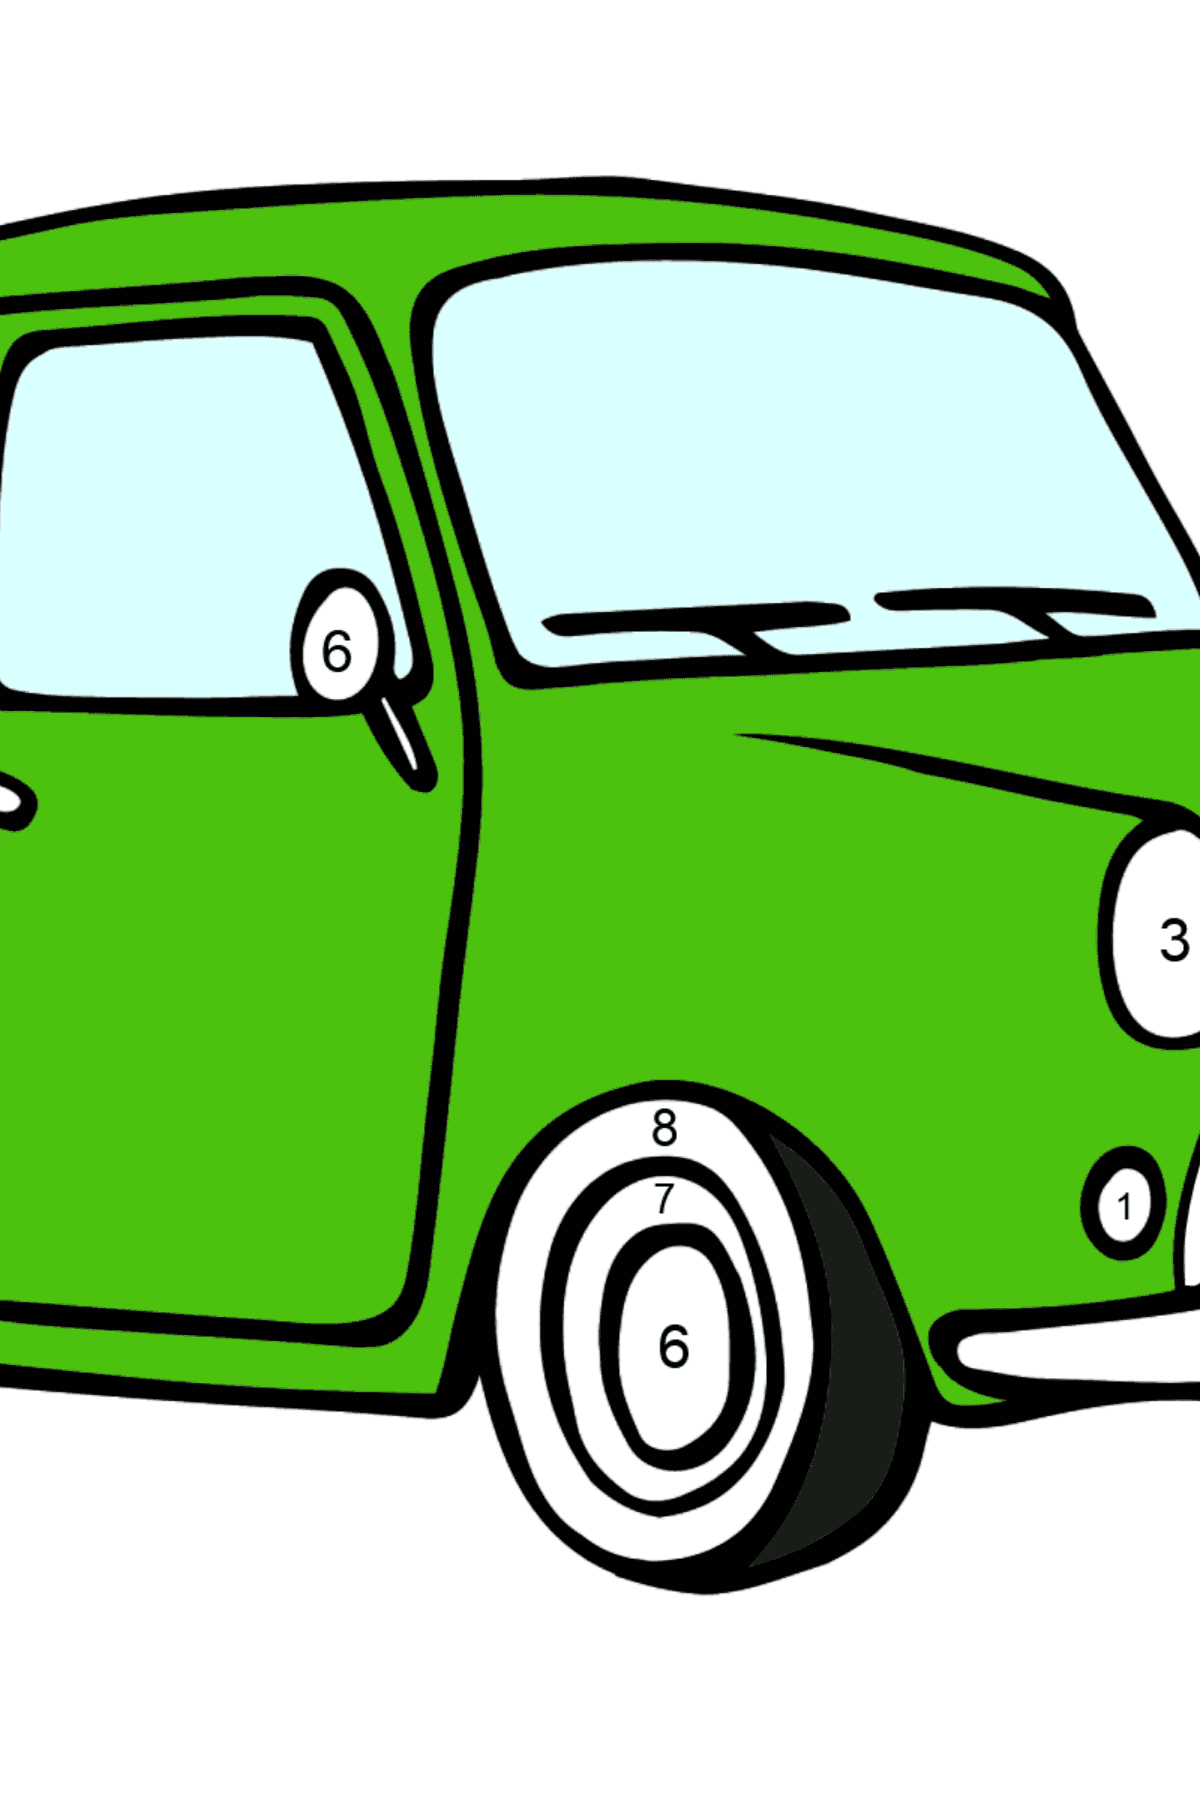 Fiat 500 coloring page (green car) - Coloring by Numbers for Kids